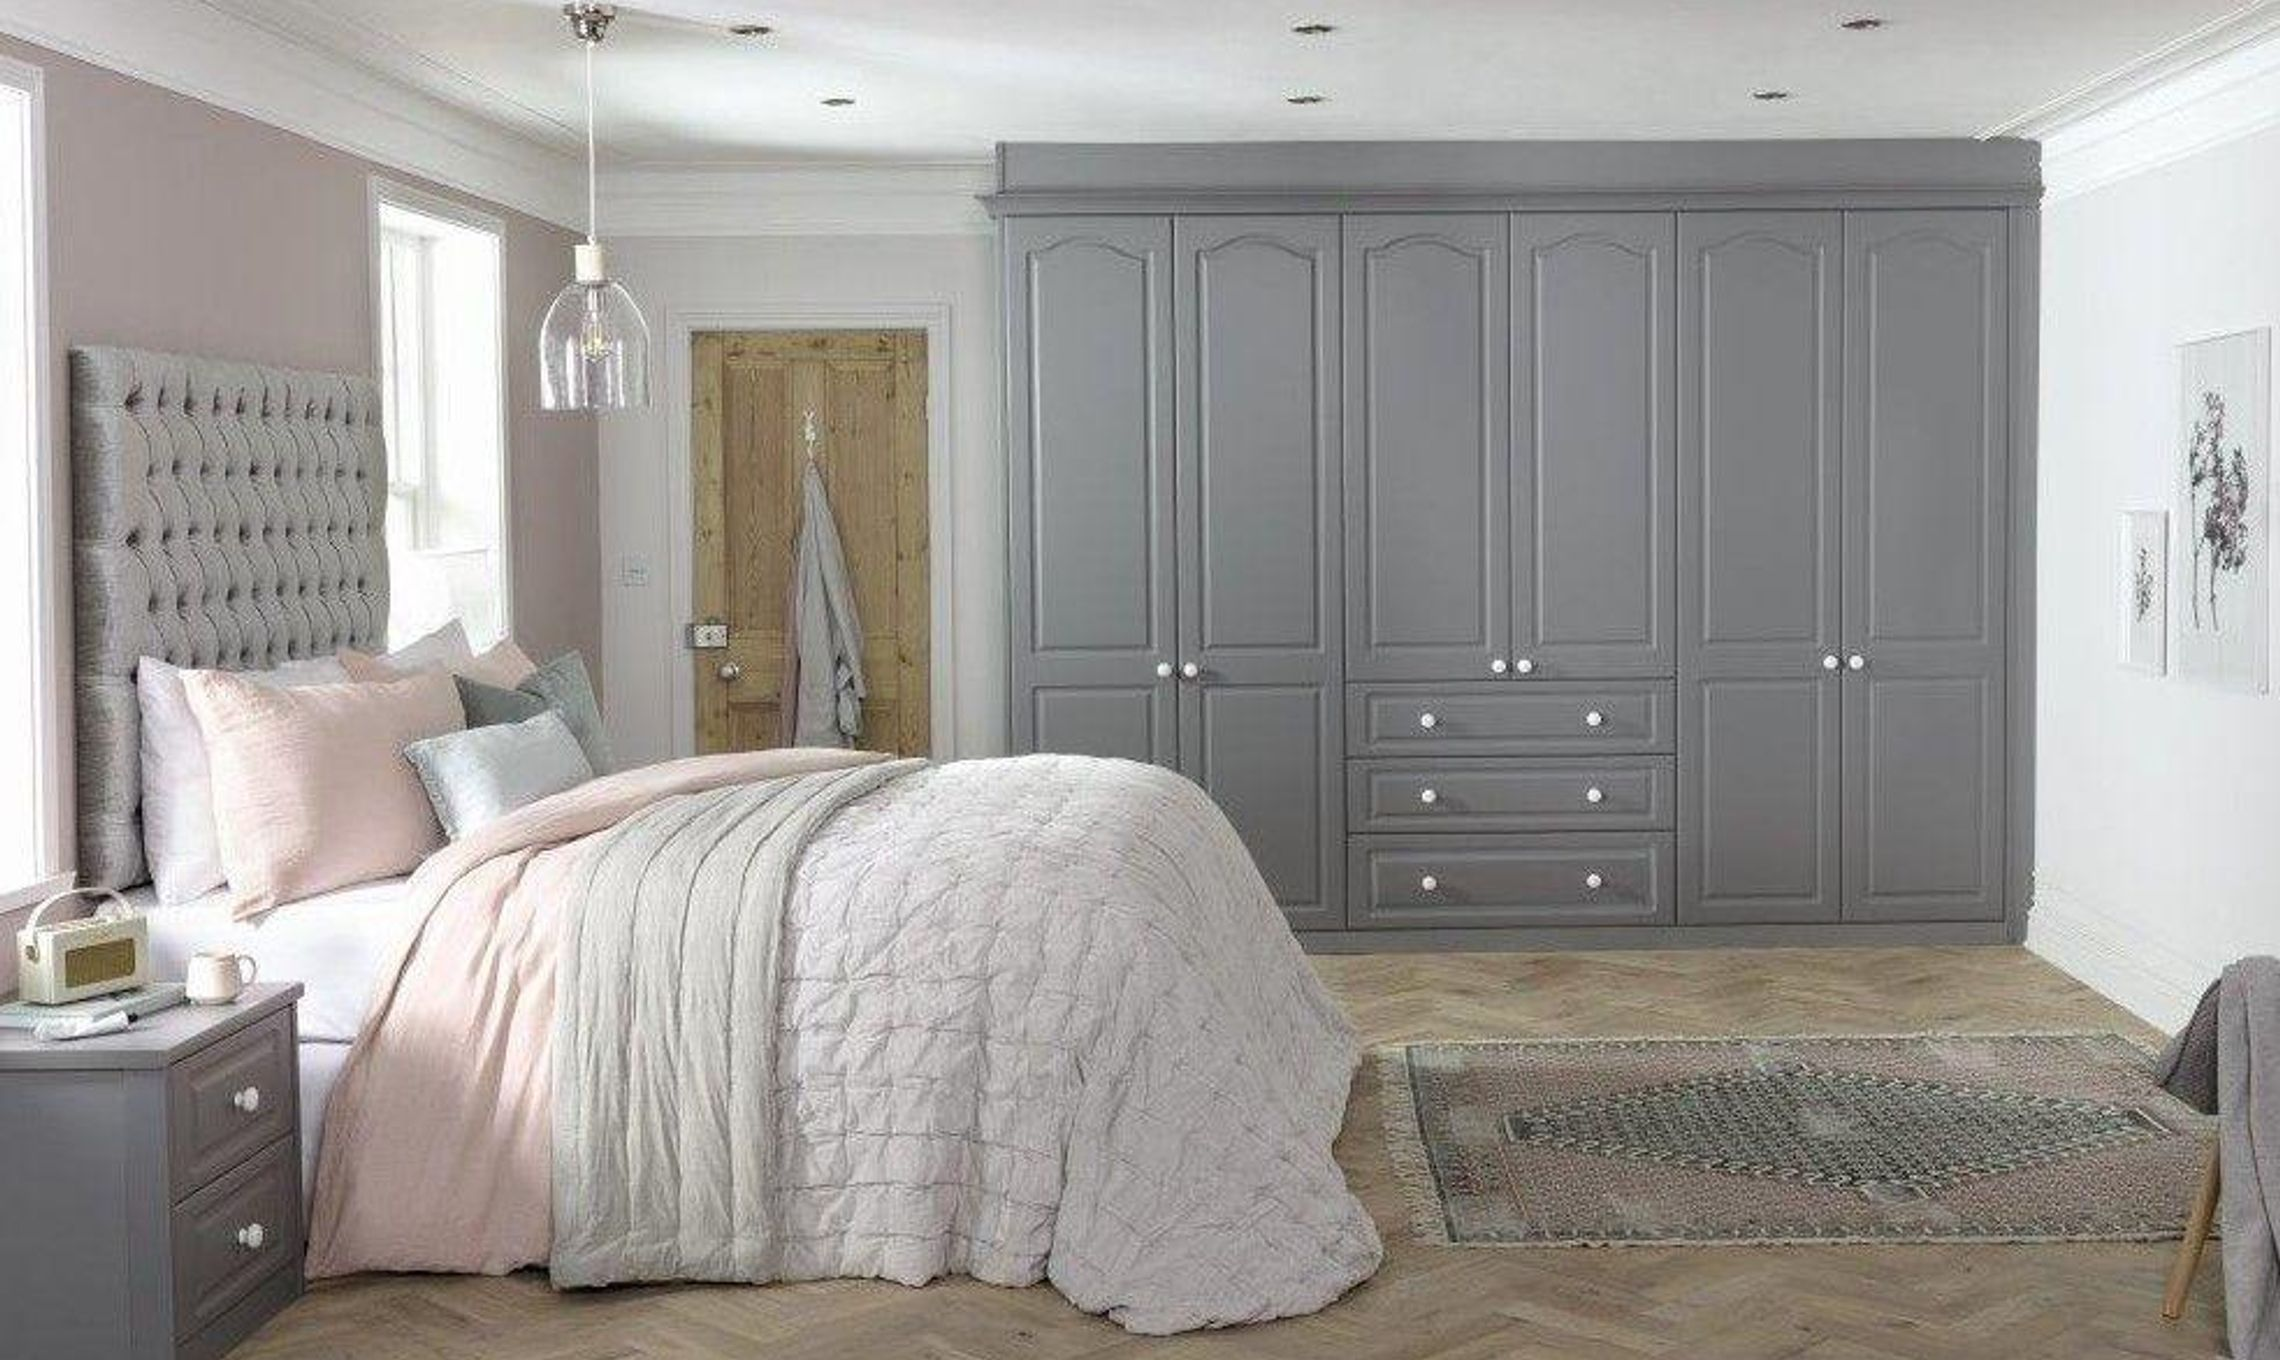 SHARPS SLATE GREY 964 Ascot doors closed R1 V2